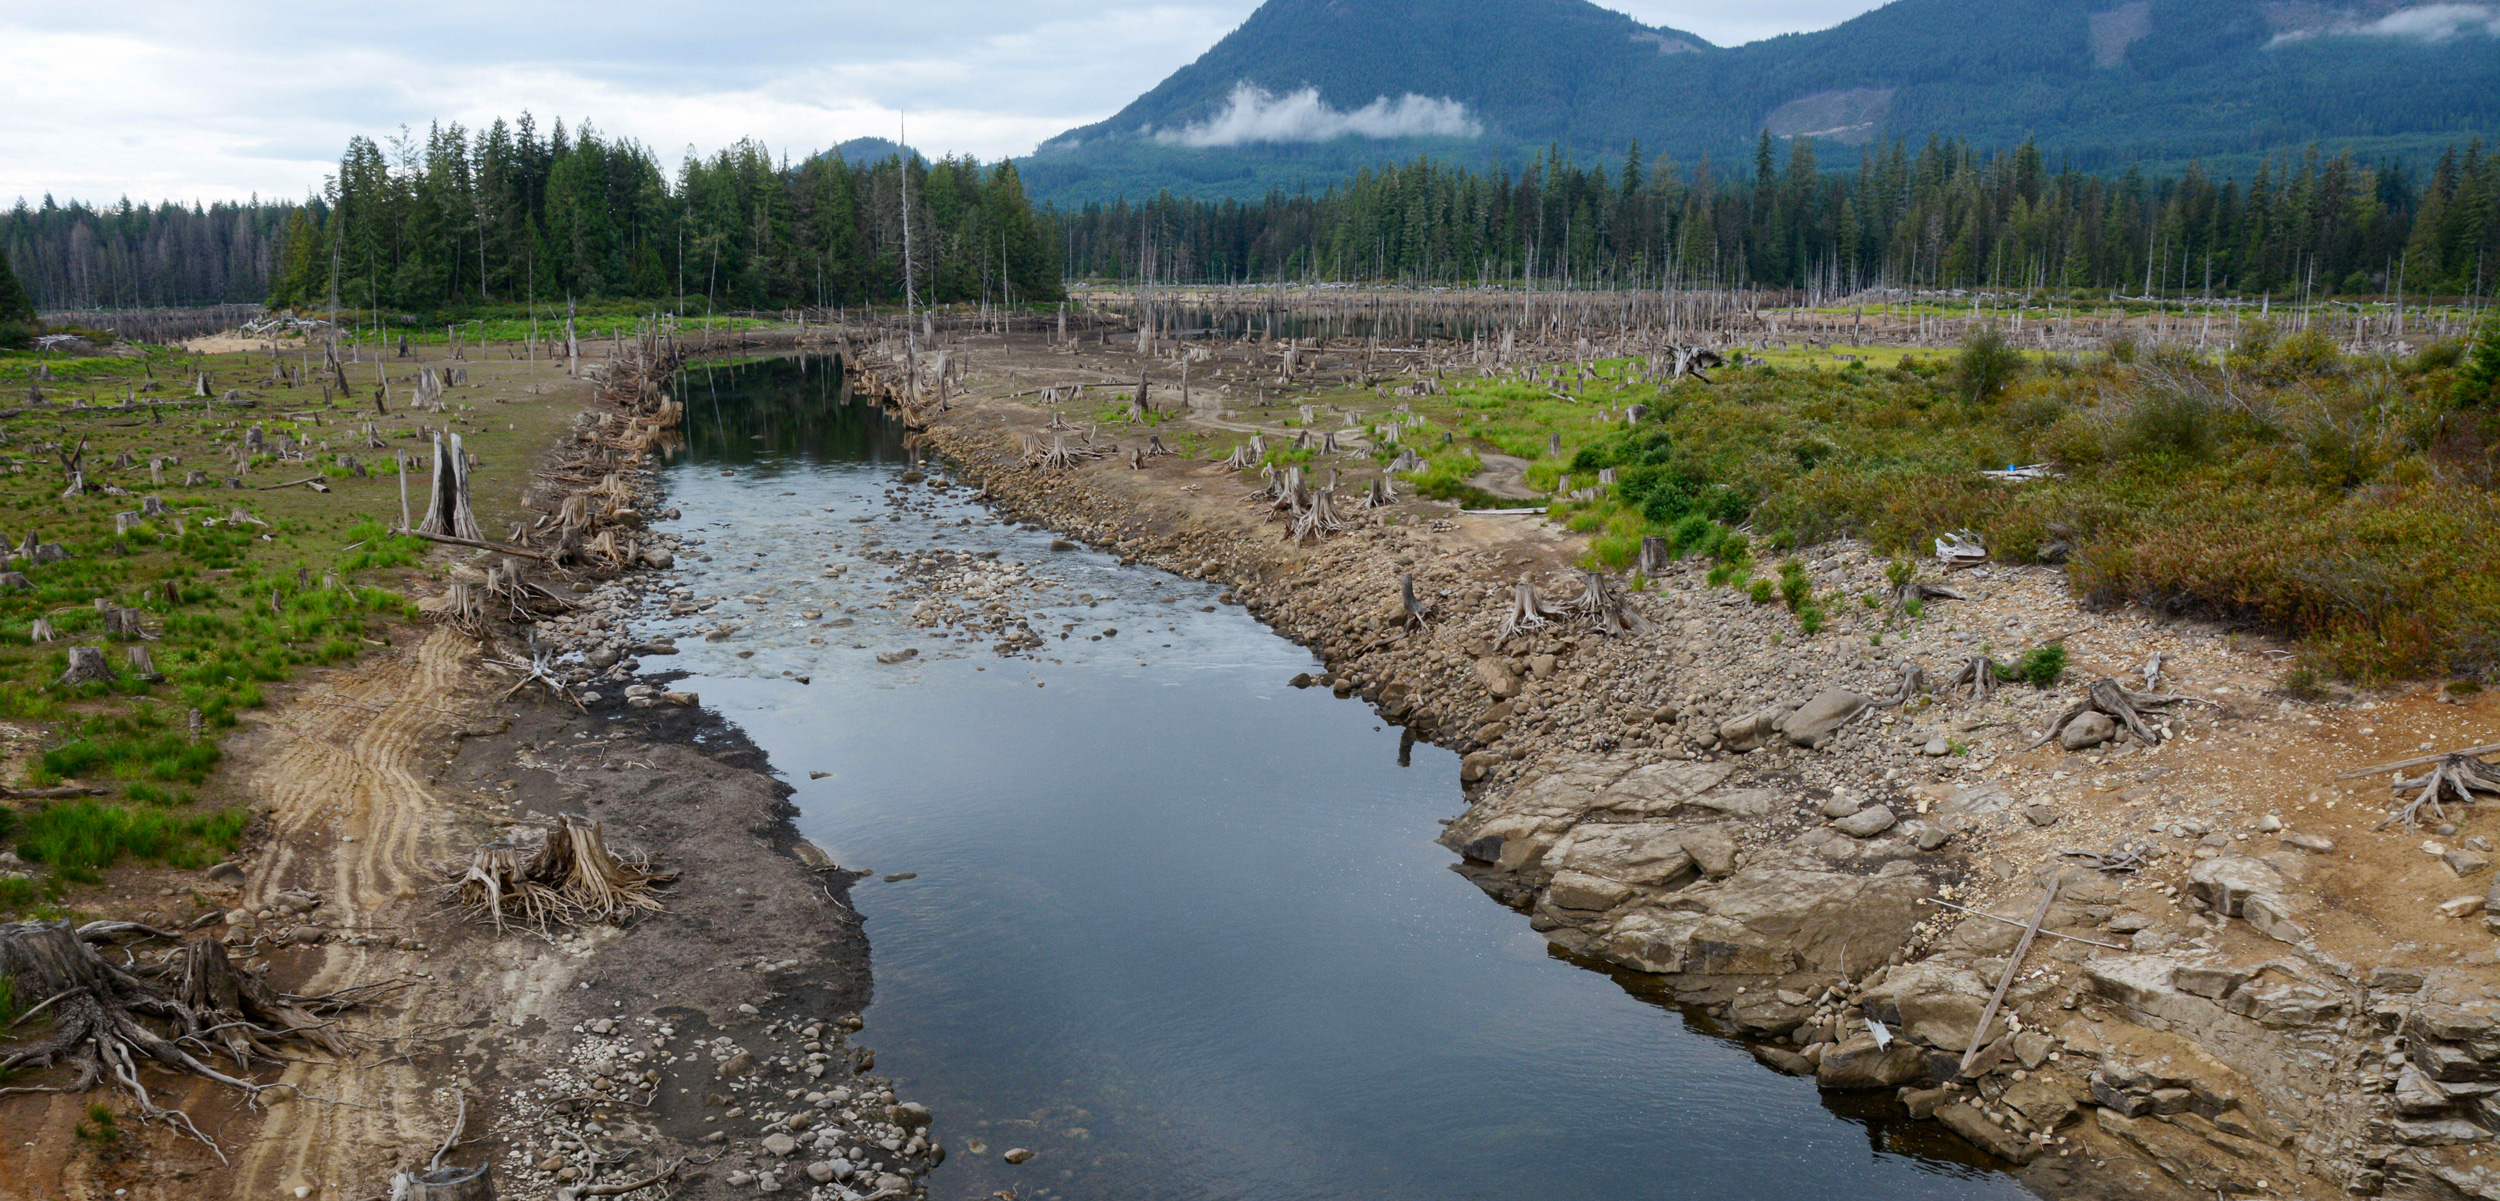 A forest landscape of clearcuts and tree stumps along a creek